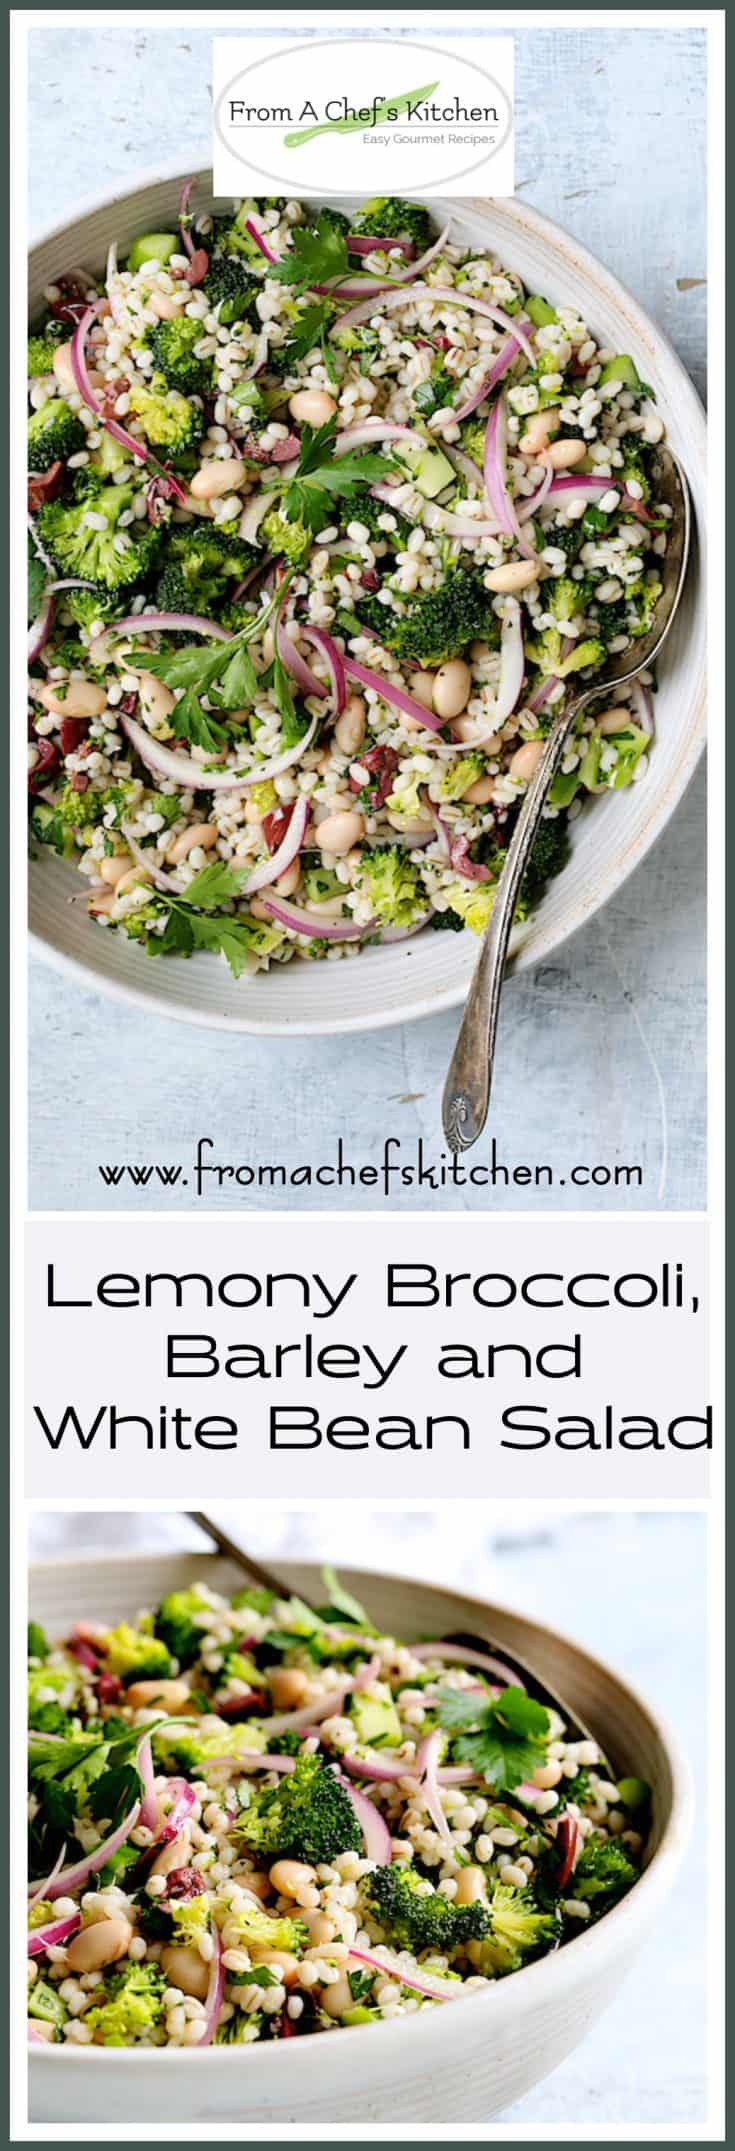 Lemony Broccoli, Barley and White Bean Salad is a light and lively Italian-inspired salad that's perfect for a healthful lunch or side dish for almost anything! #salad #vegetablesalad #vegan #vegansalad #vegetariansalad #broccolirecipes #saladrecipes